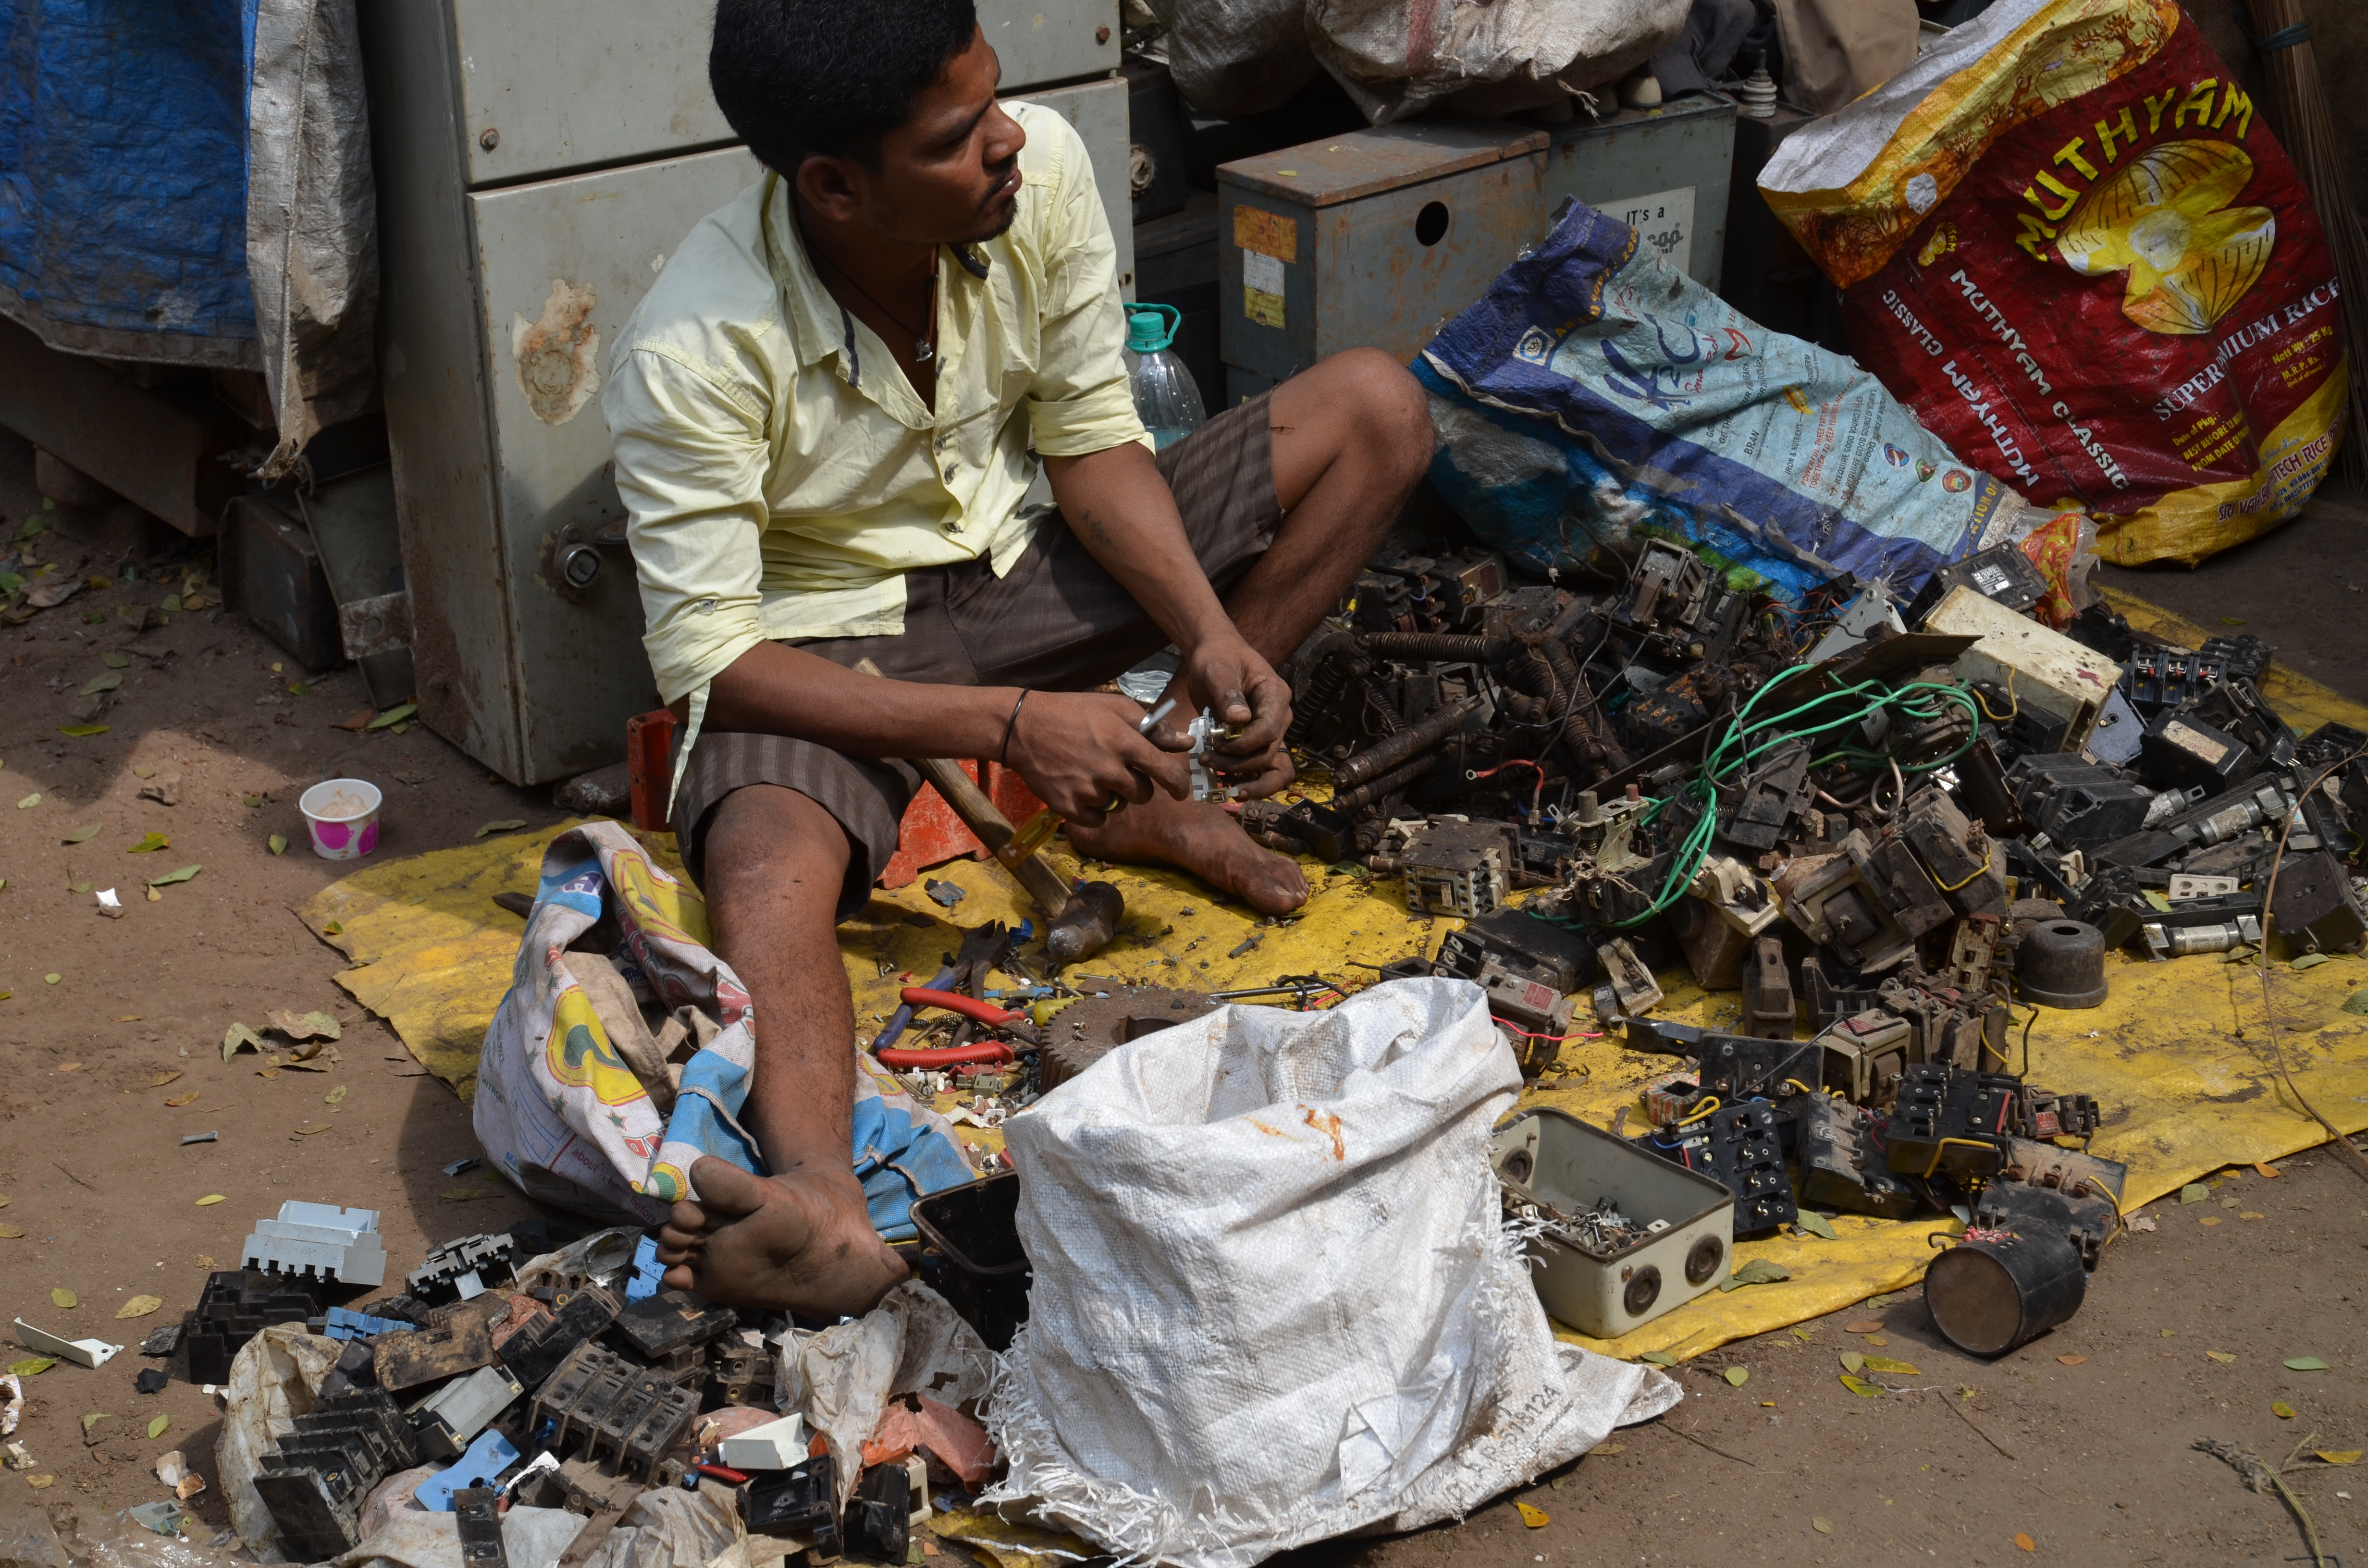 Finding E-waste